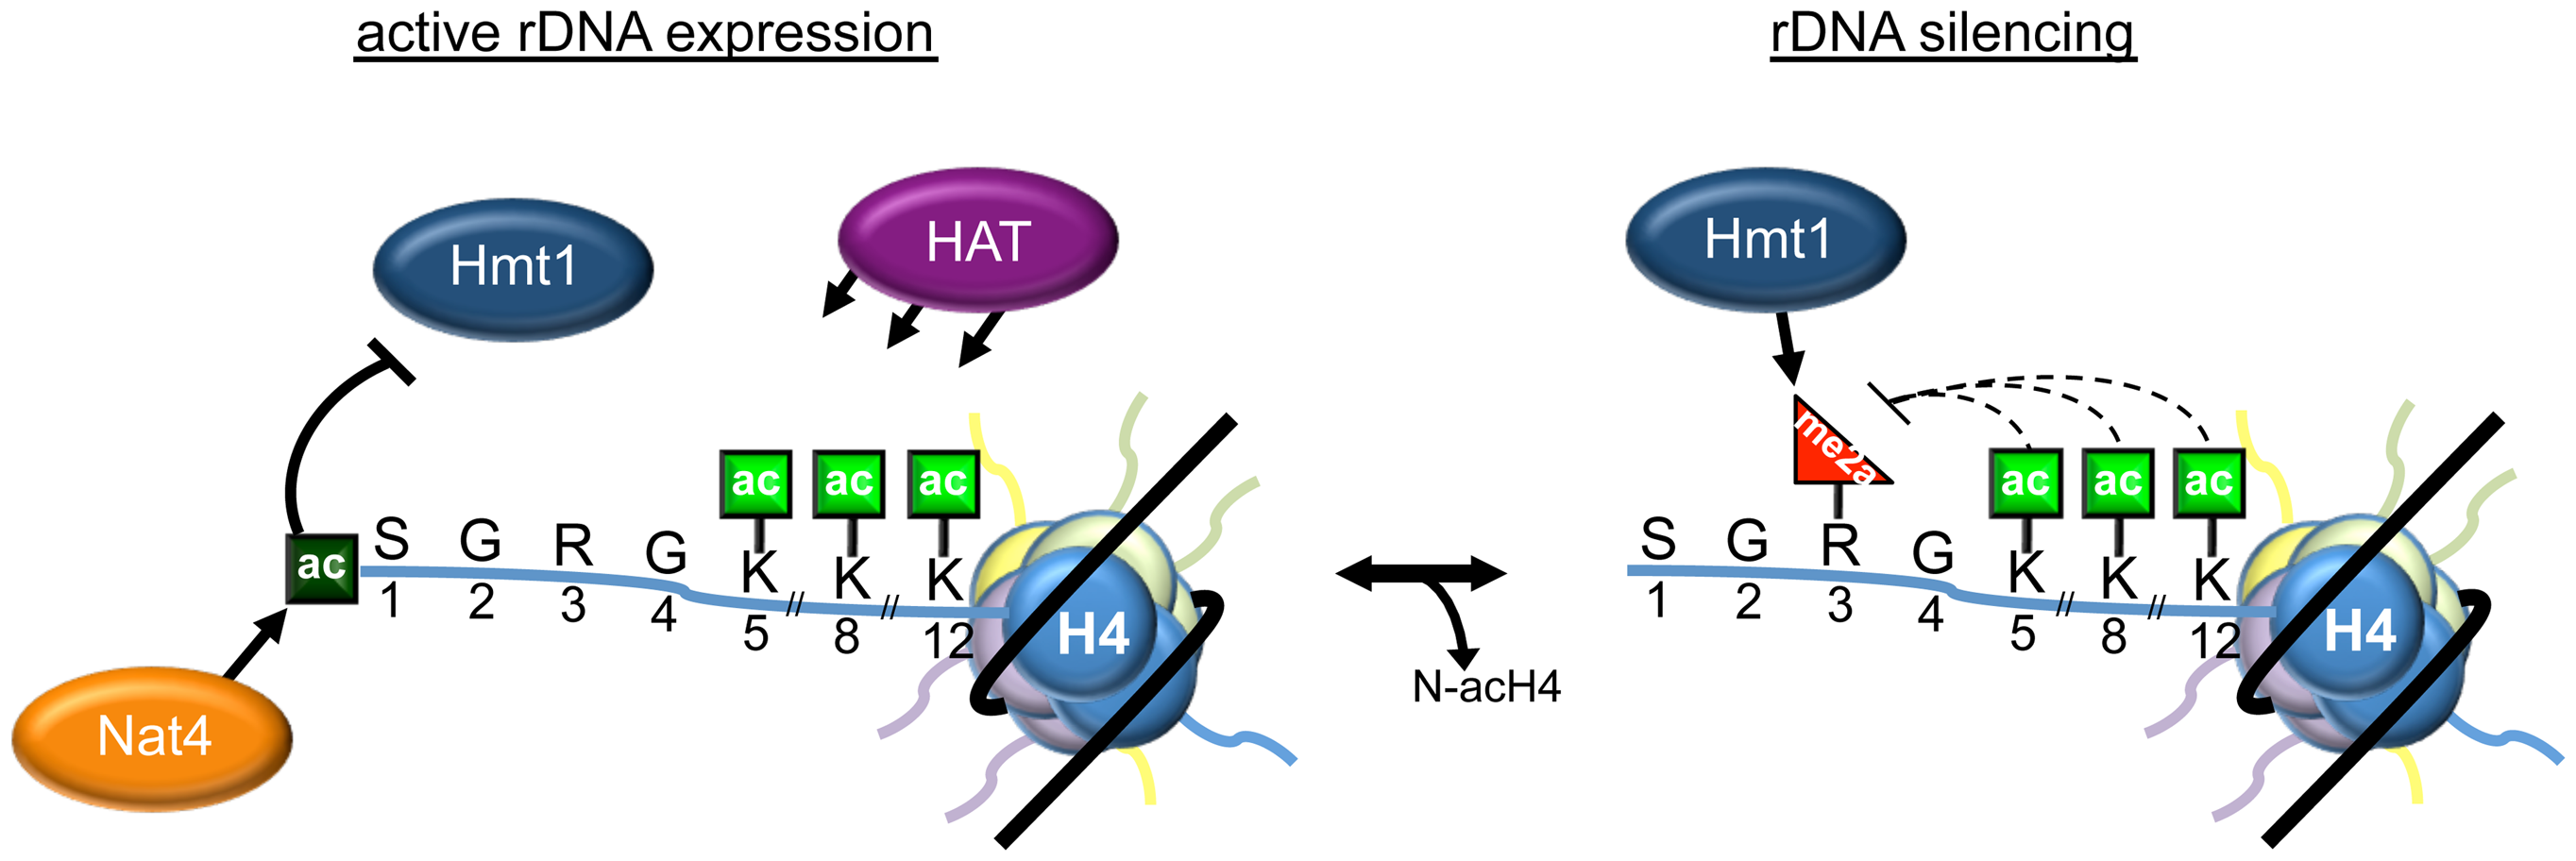 Model depicting the role of N-acH4 in rDNA silencing.